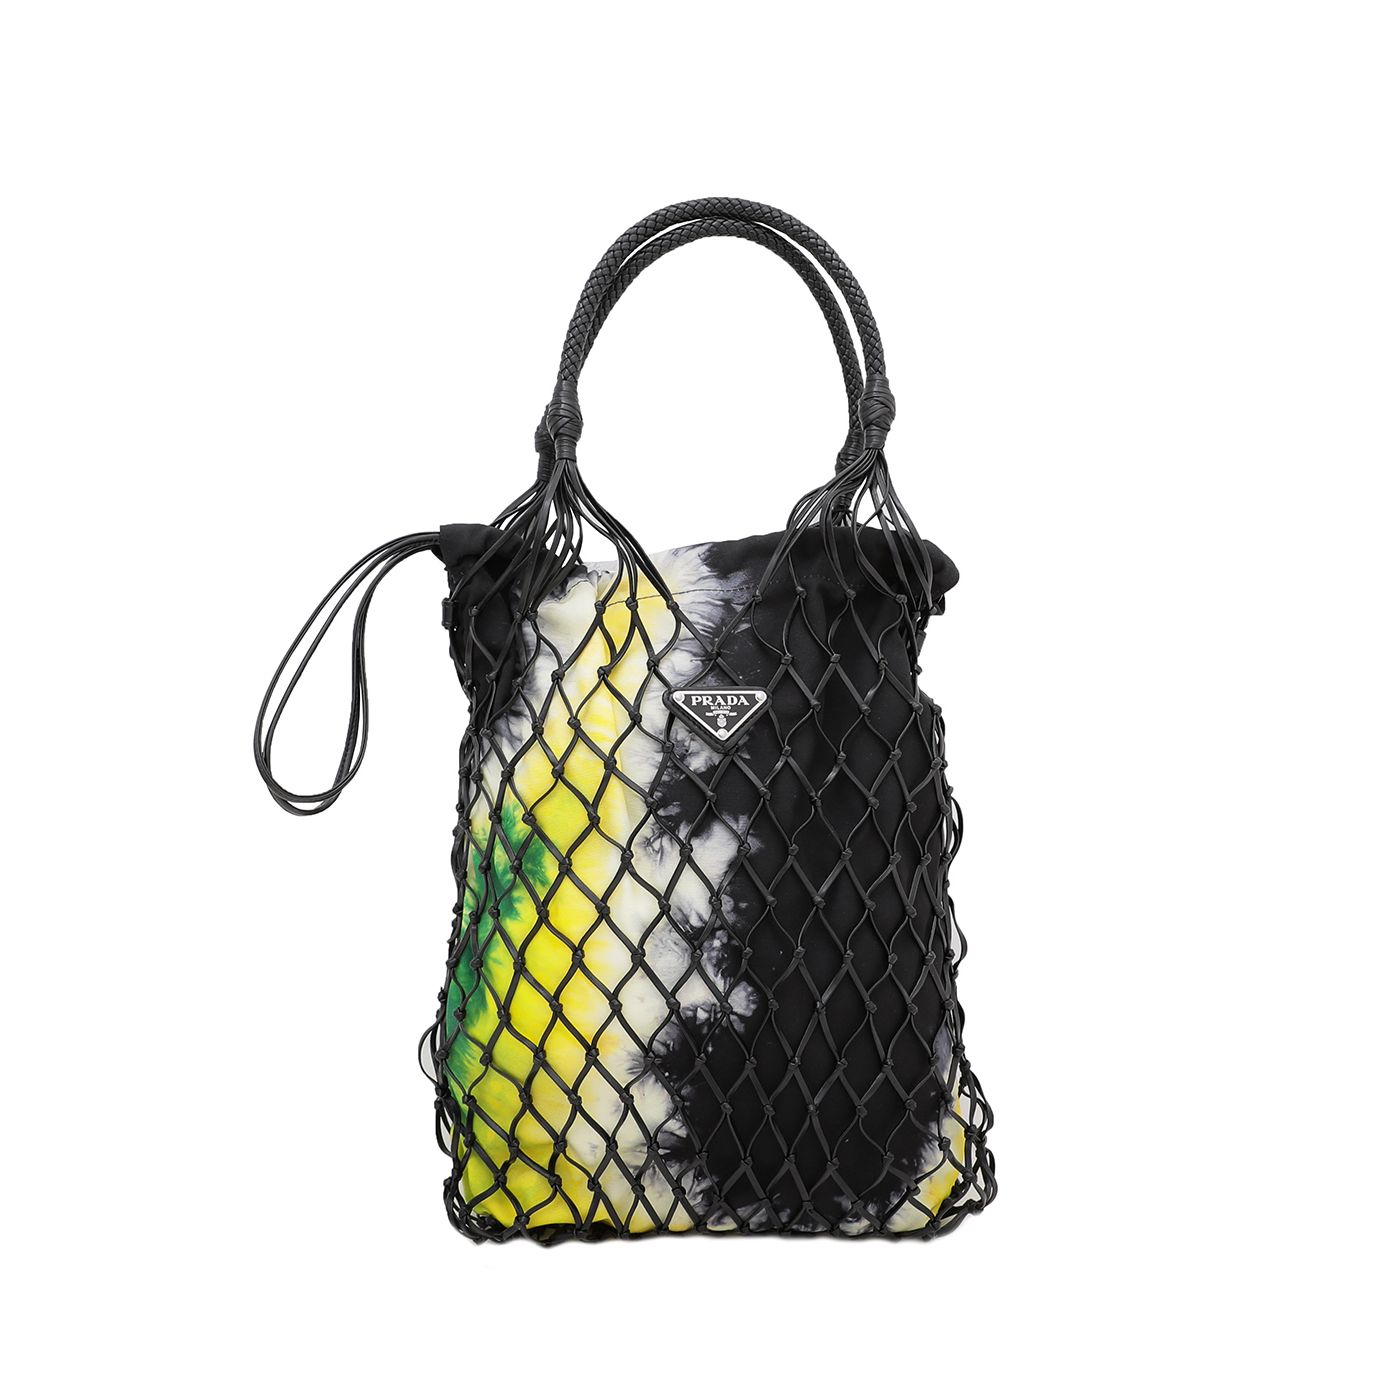 Prada Black / Multicolor Tie-Dye Fabric and Mesh Bag